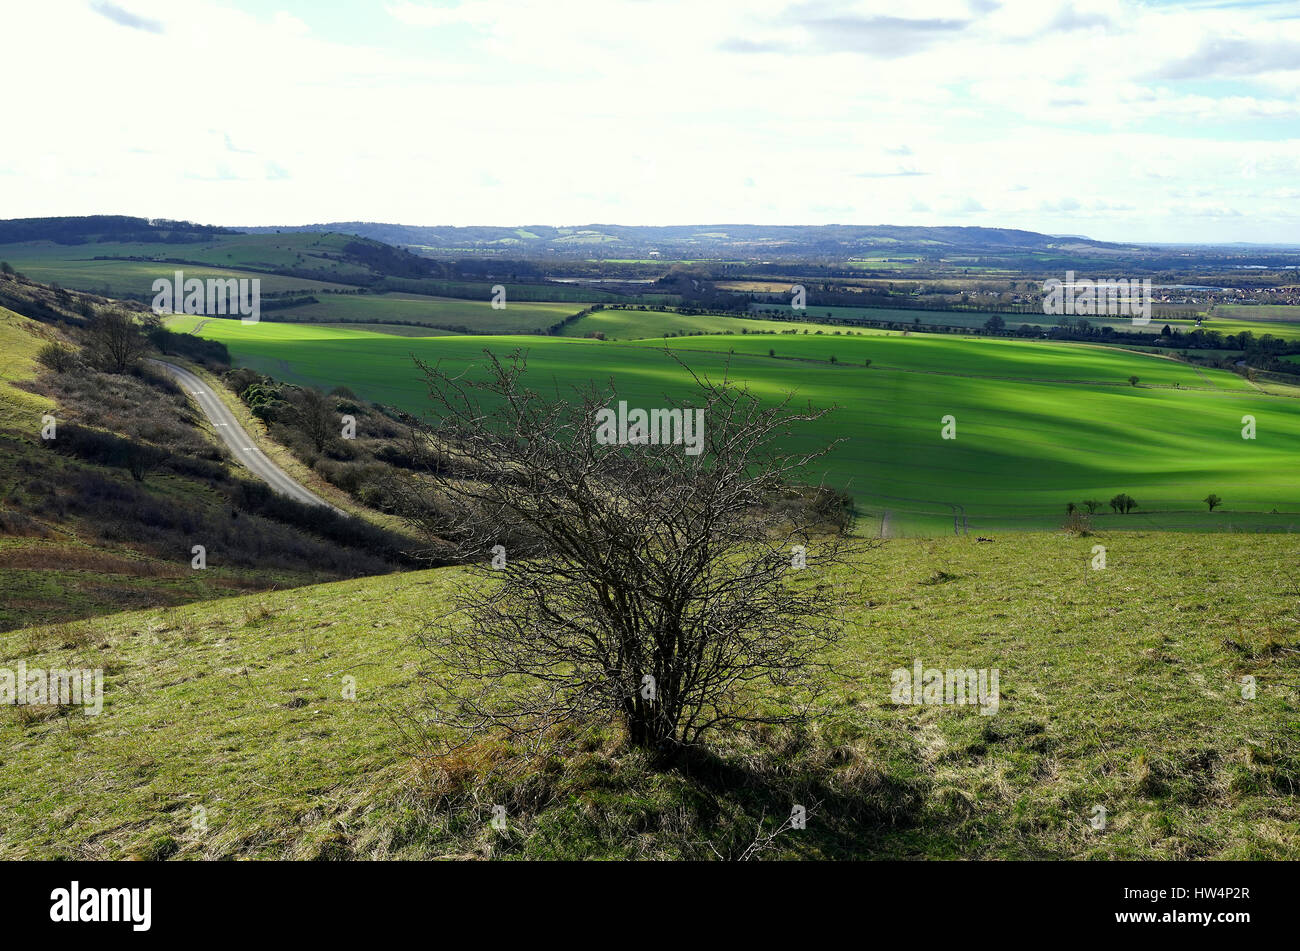 A view from Ivinghoe Beacon - Stock Image